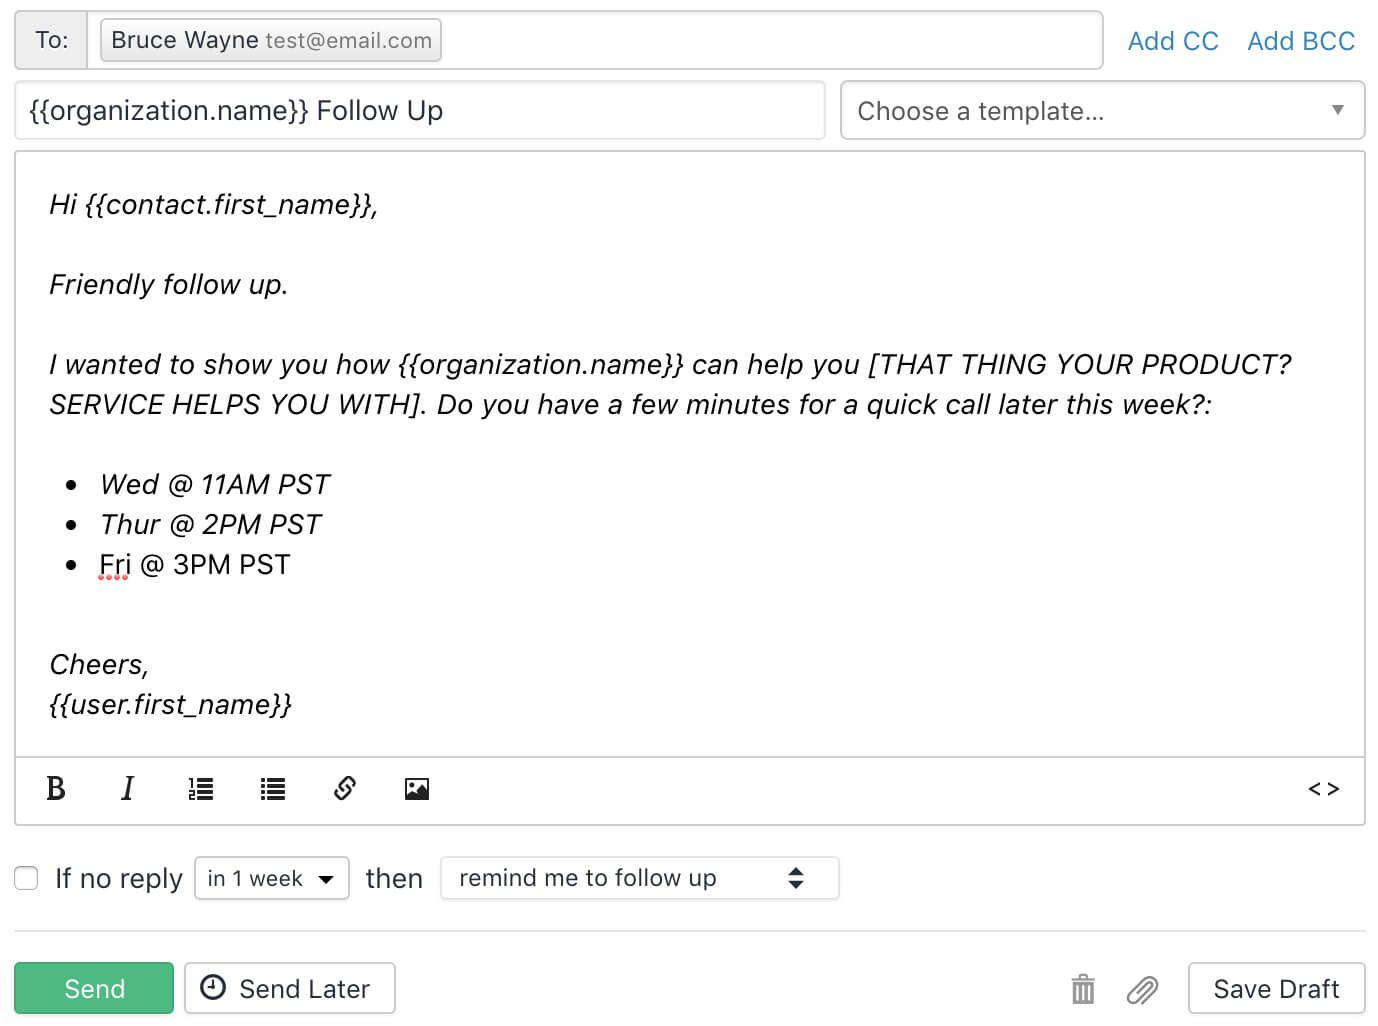 009 Archaicawful Follow Up Email After Sale Meeting Template Image Full